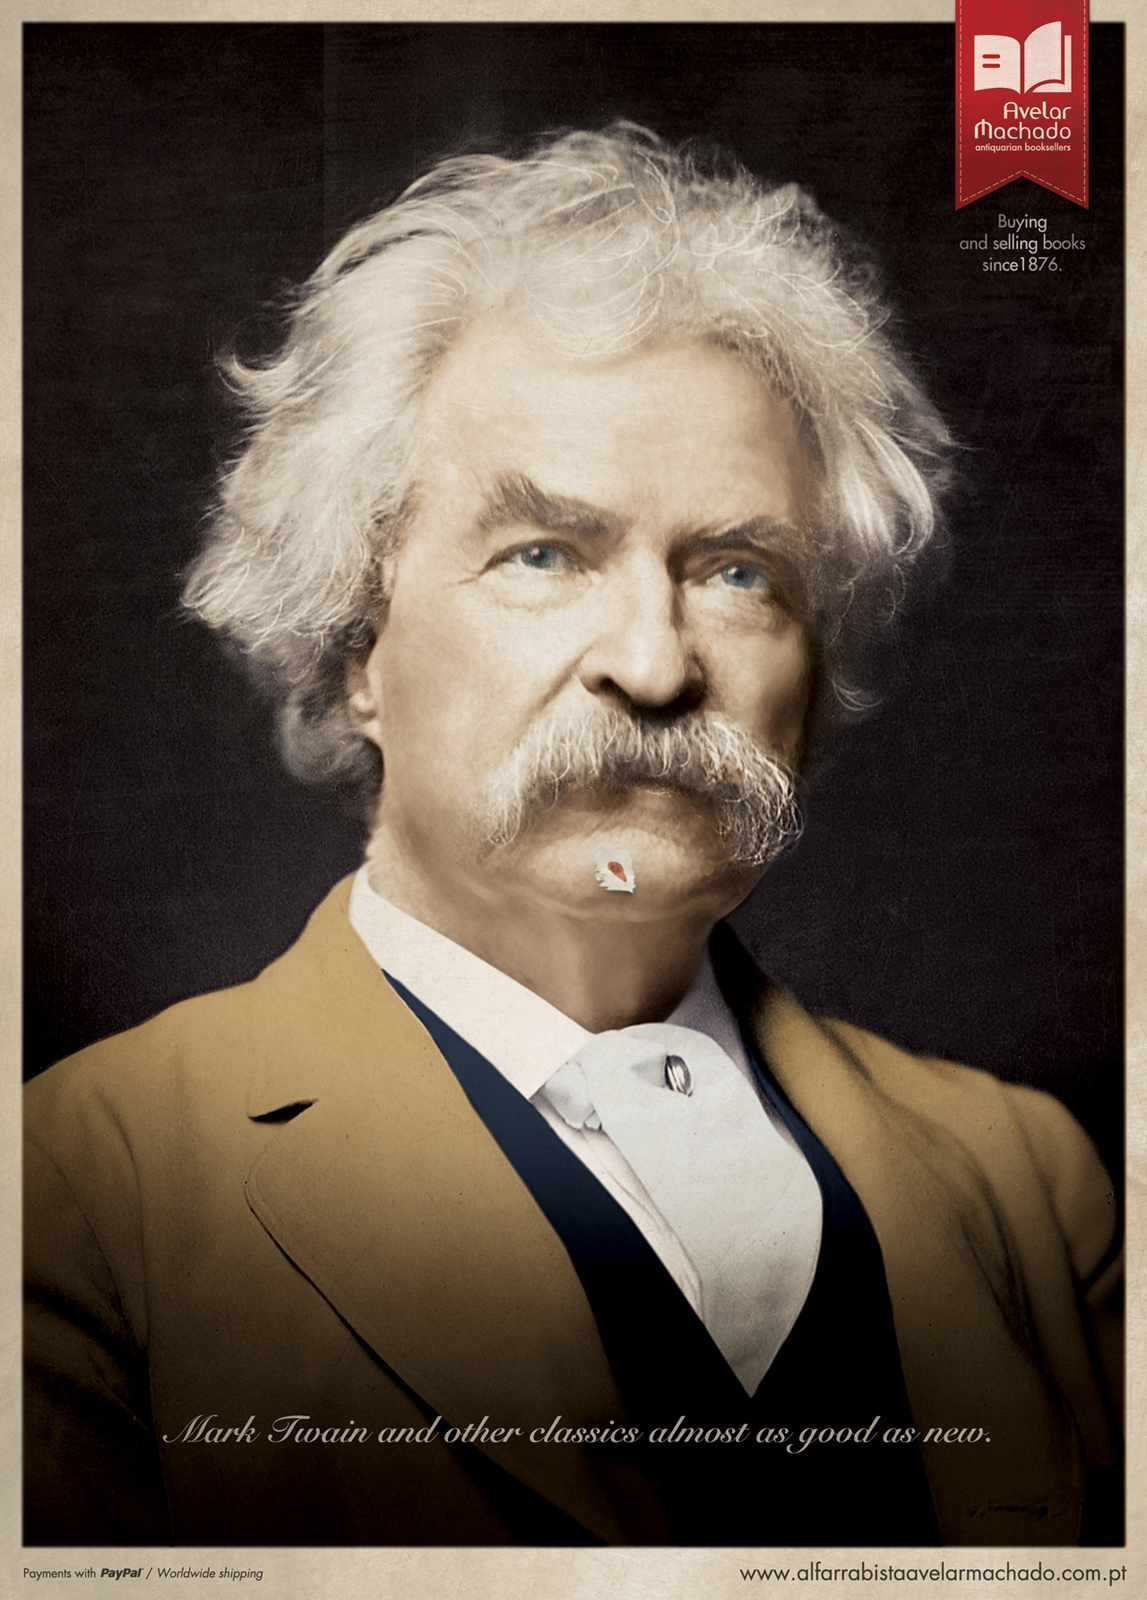 Ads for books - Almost as good as new - Mark Twain